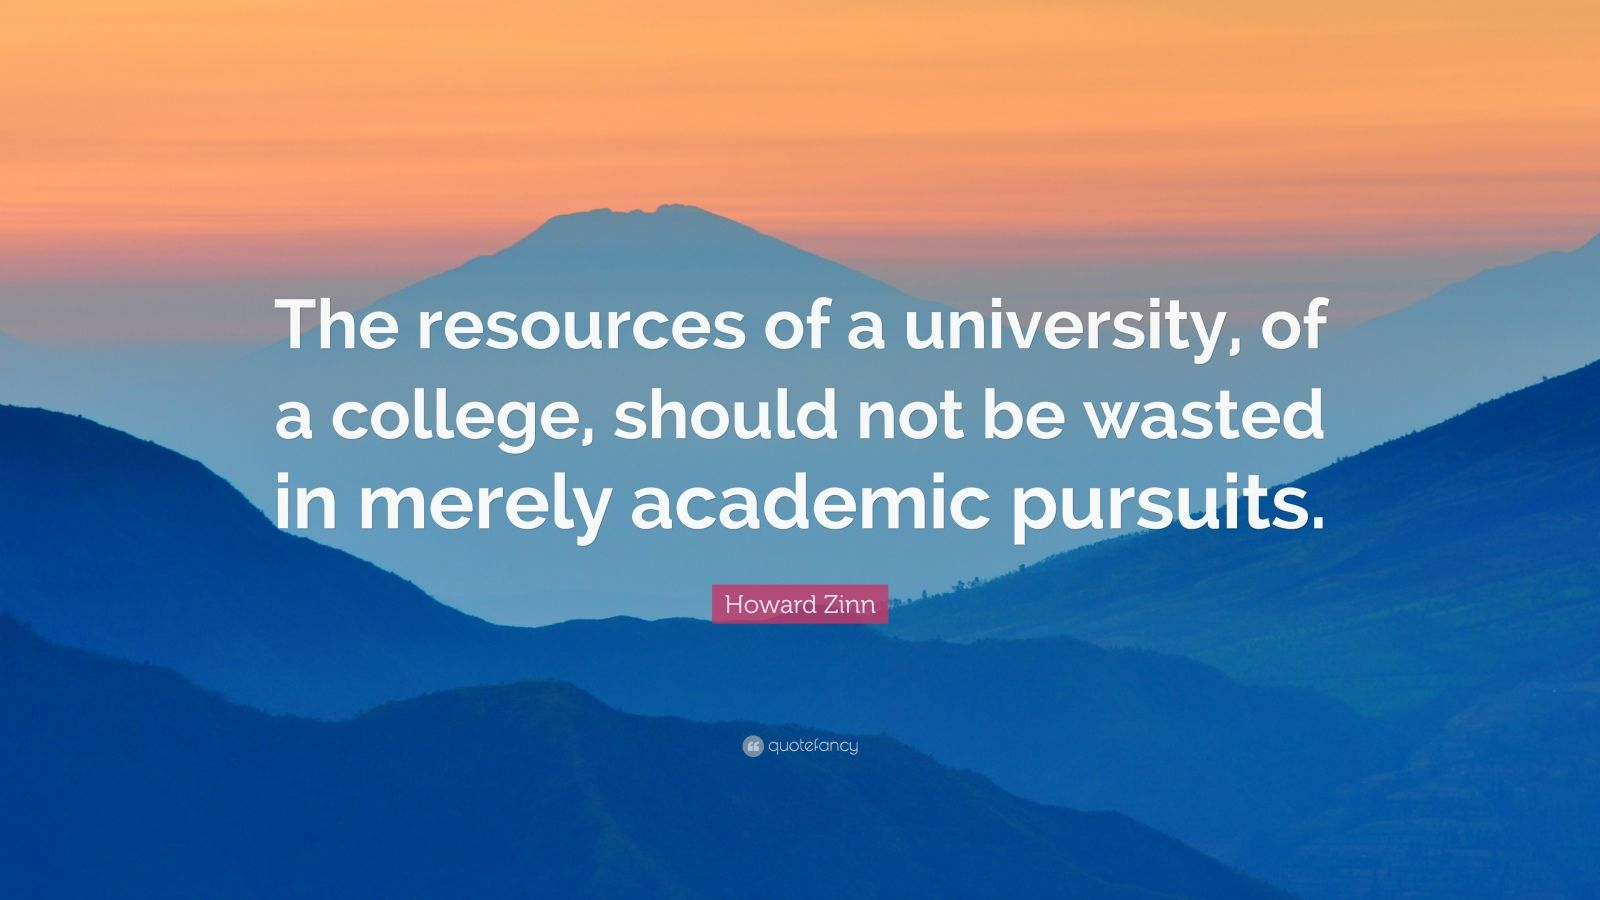 """Howard Zinn Quote: """"The resources of a university, of a college, should not be wasted in merely academic pursuits."""""""